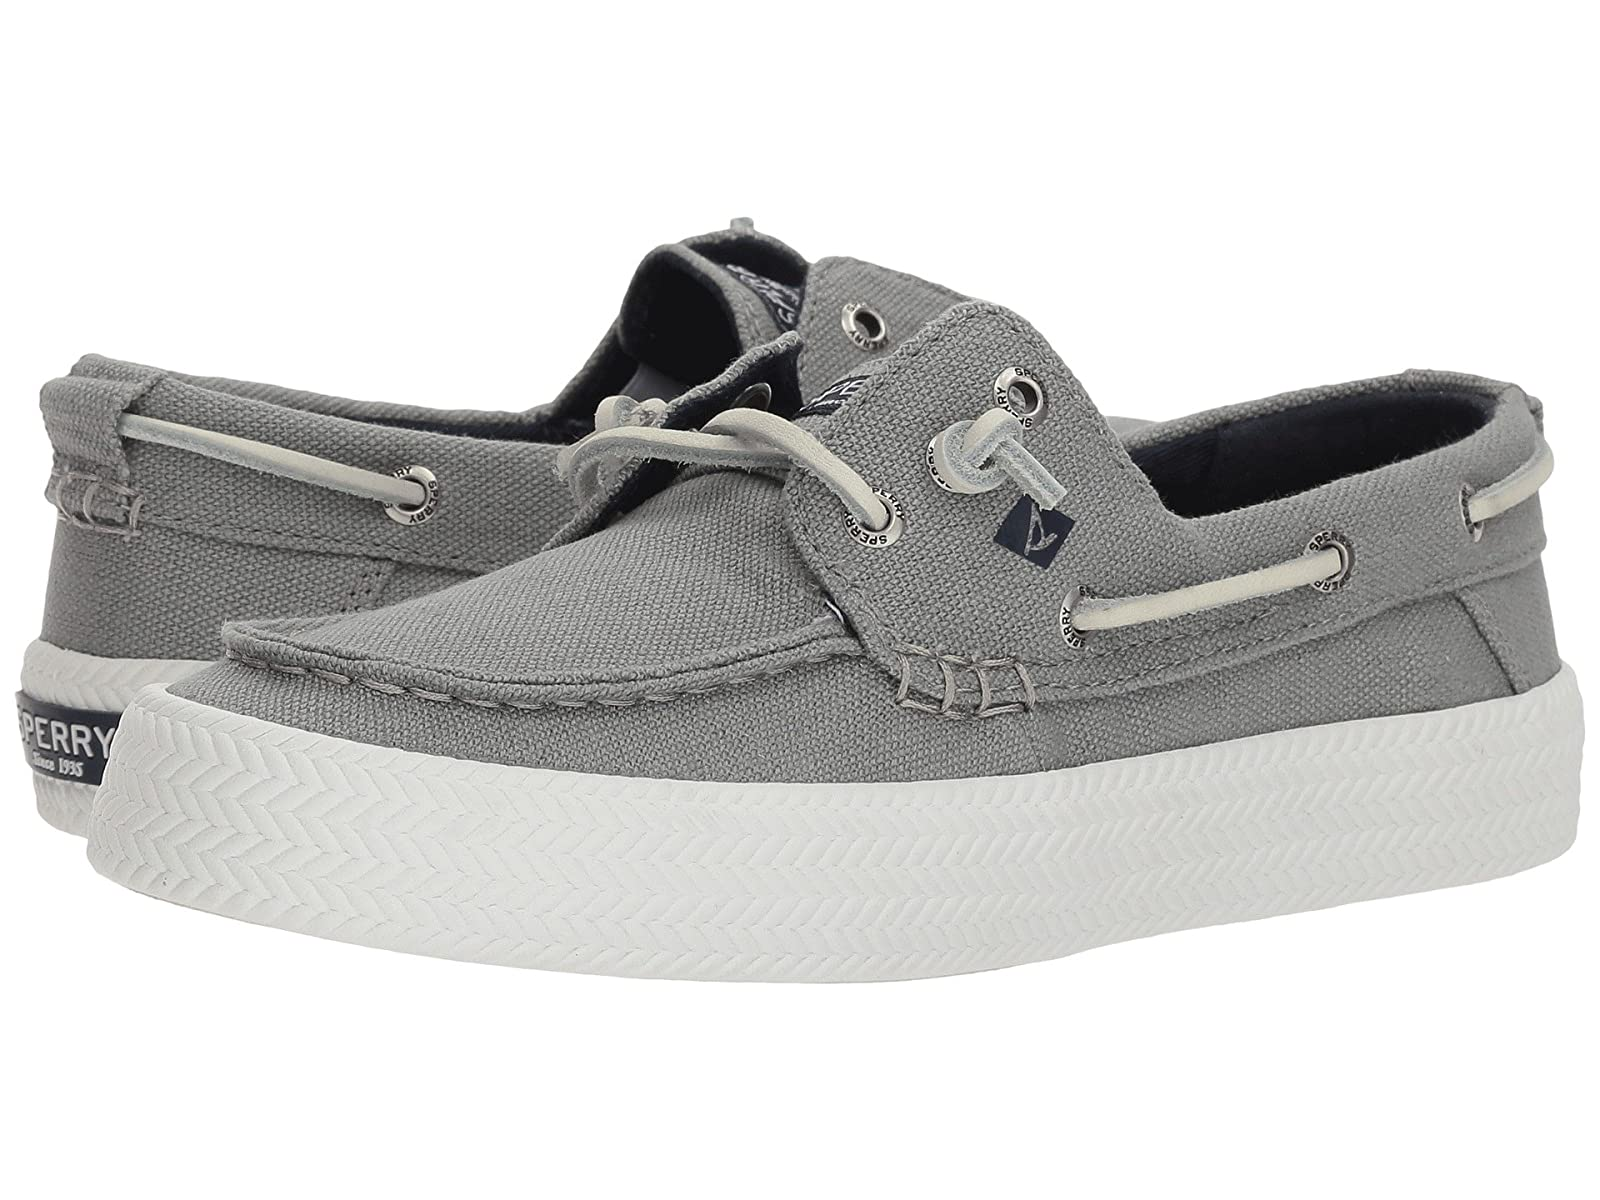 Sperry Crest Resort RopeSelling fashionable and eye-catching shoes